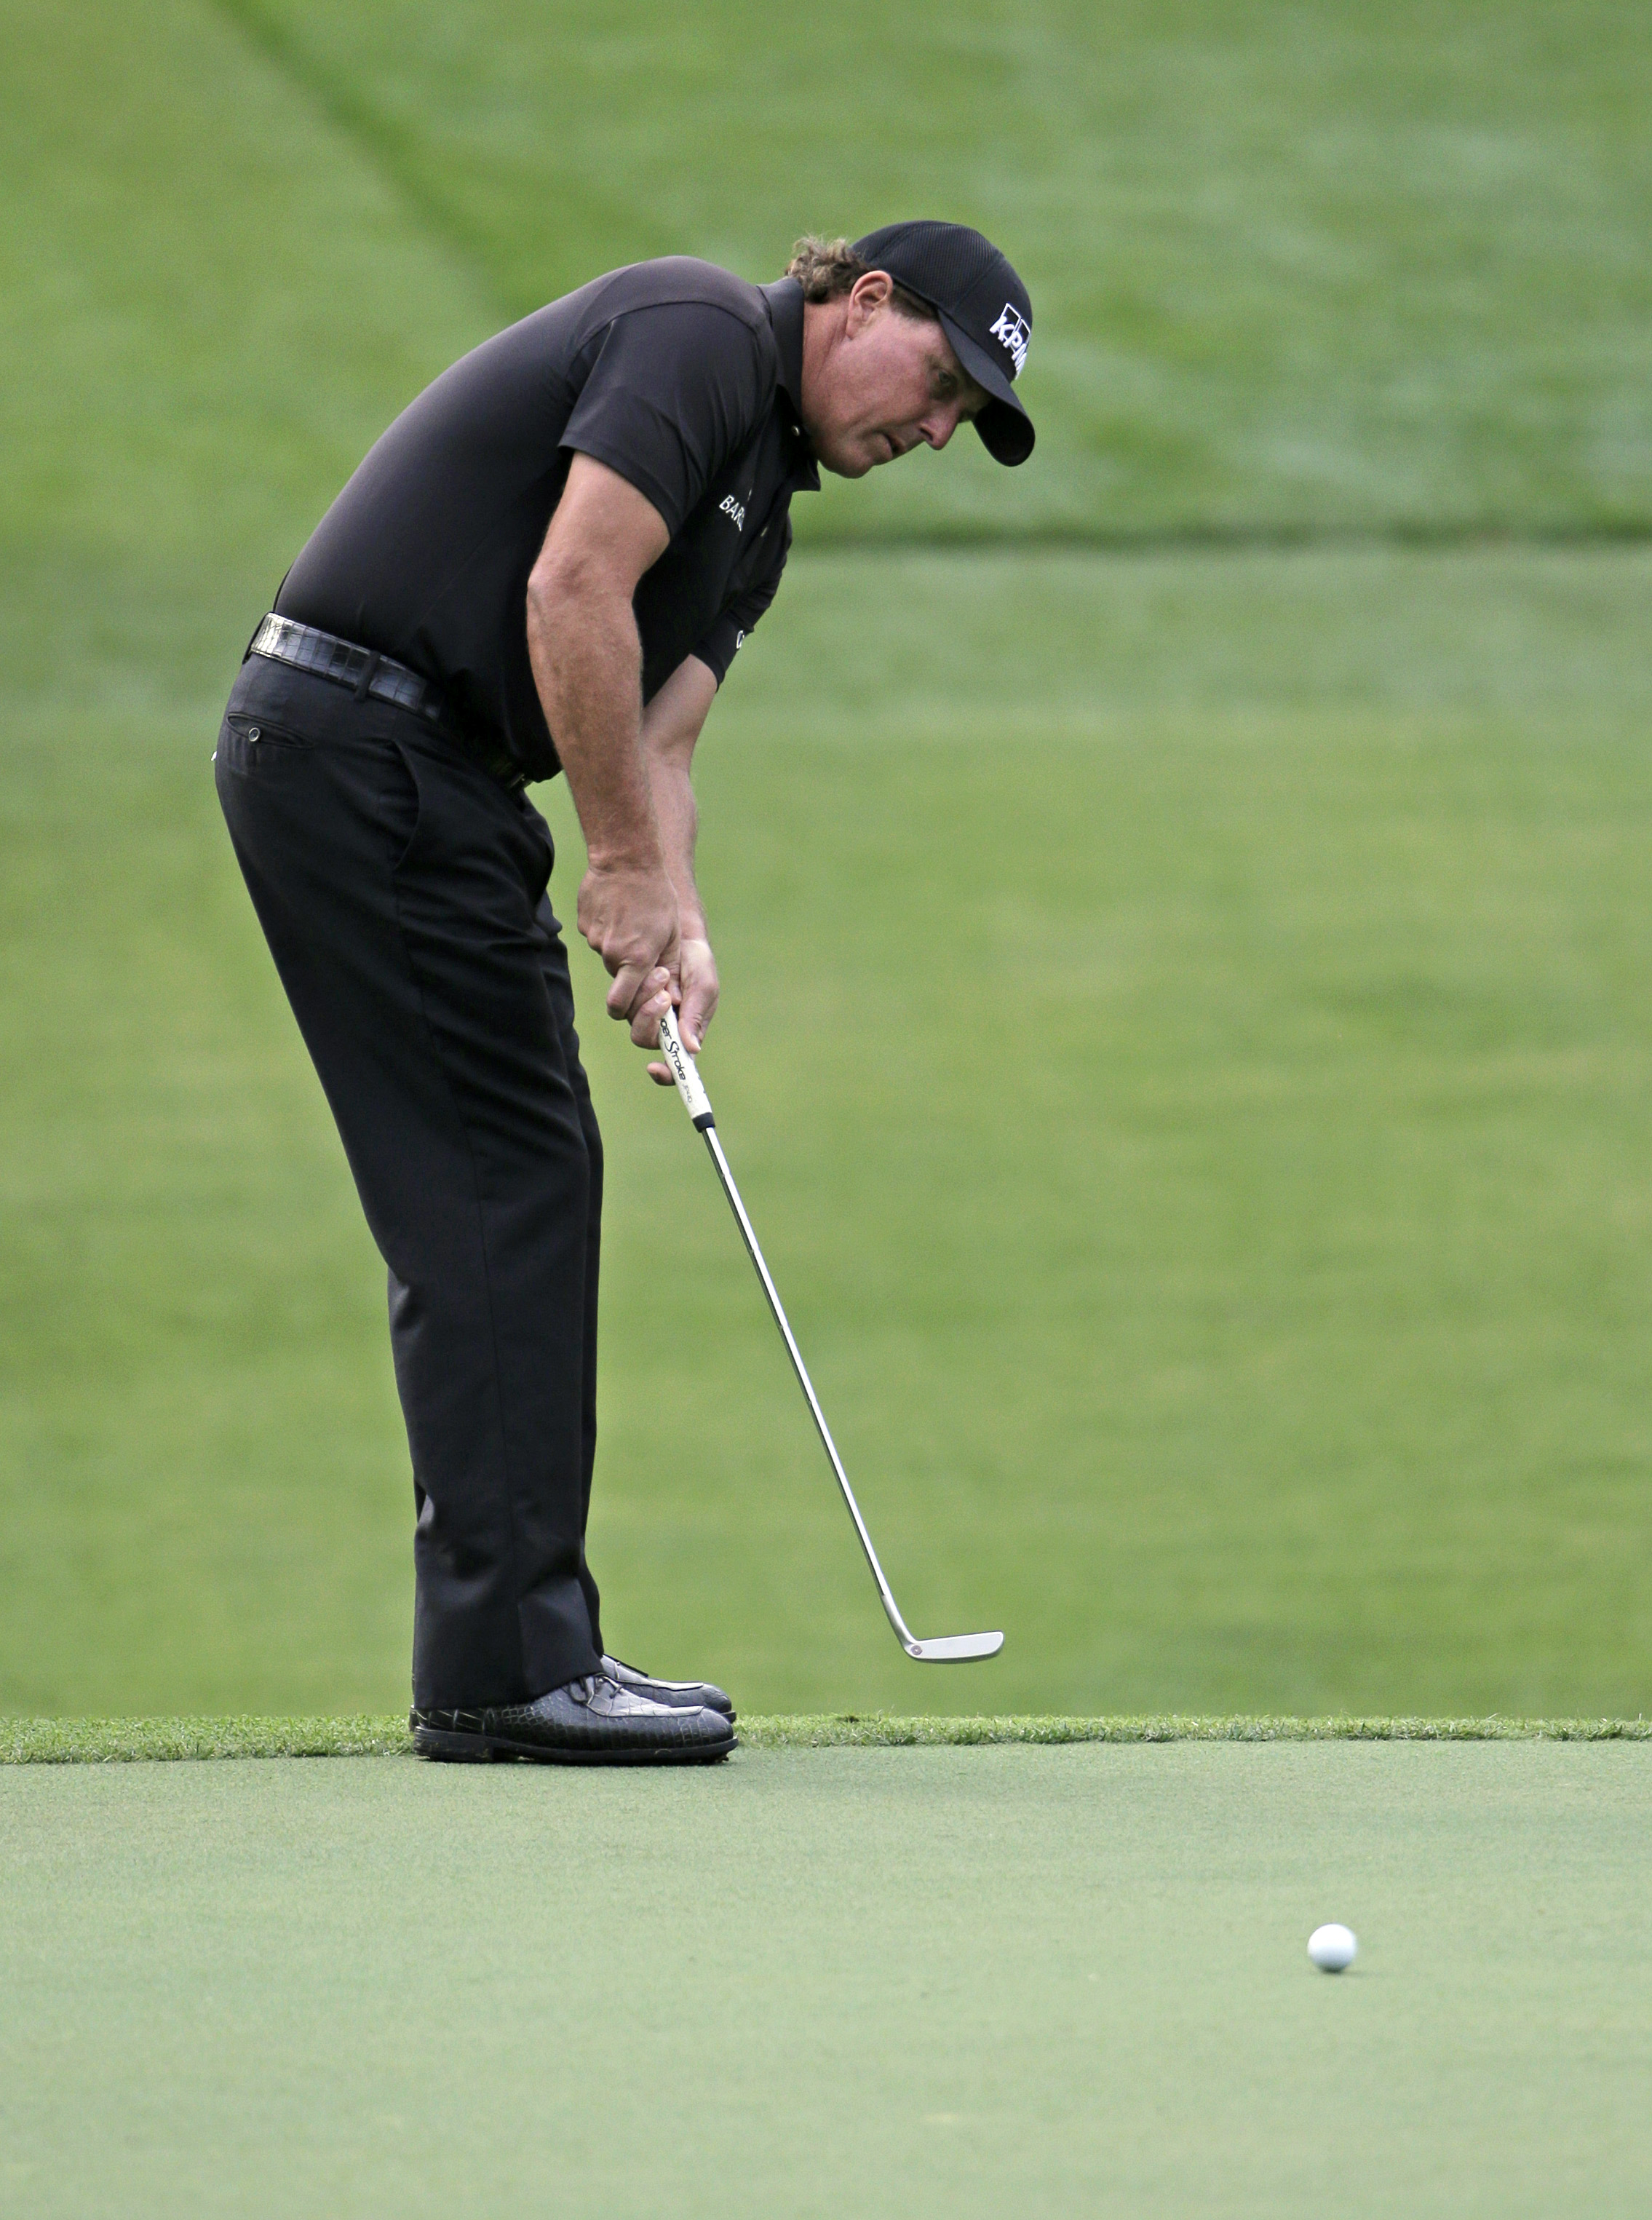 Phil Mickelson watches his putt on the second hole during the pro-am for the Wells Fargo Championship golf tournament at the Quail Hollow Club in Charlotte, N.C., Wednesday, May 13, 2015. (AP Photo/Chuck Burton)